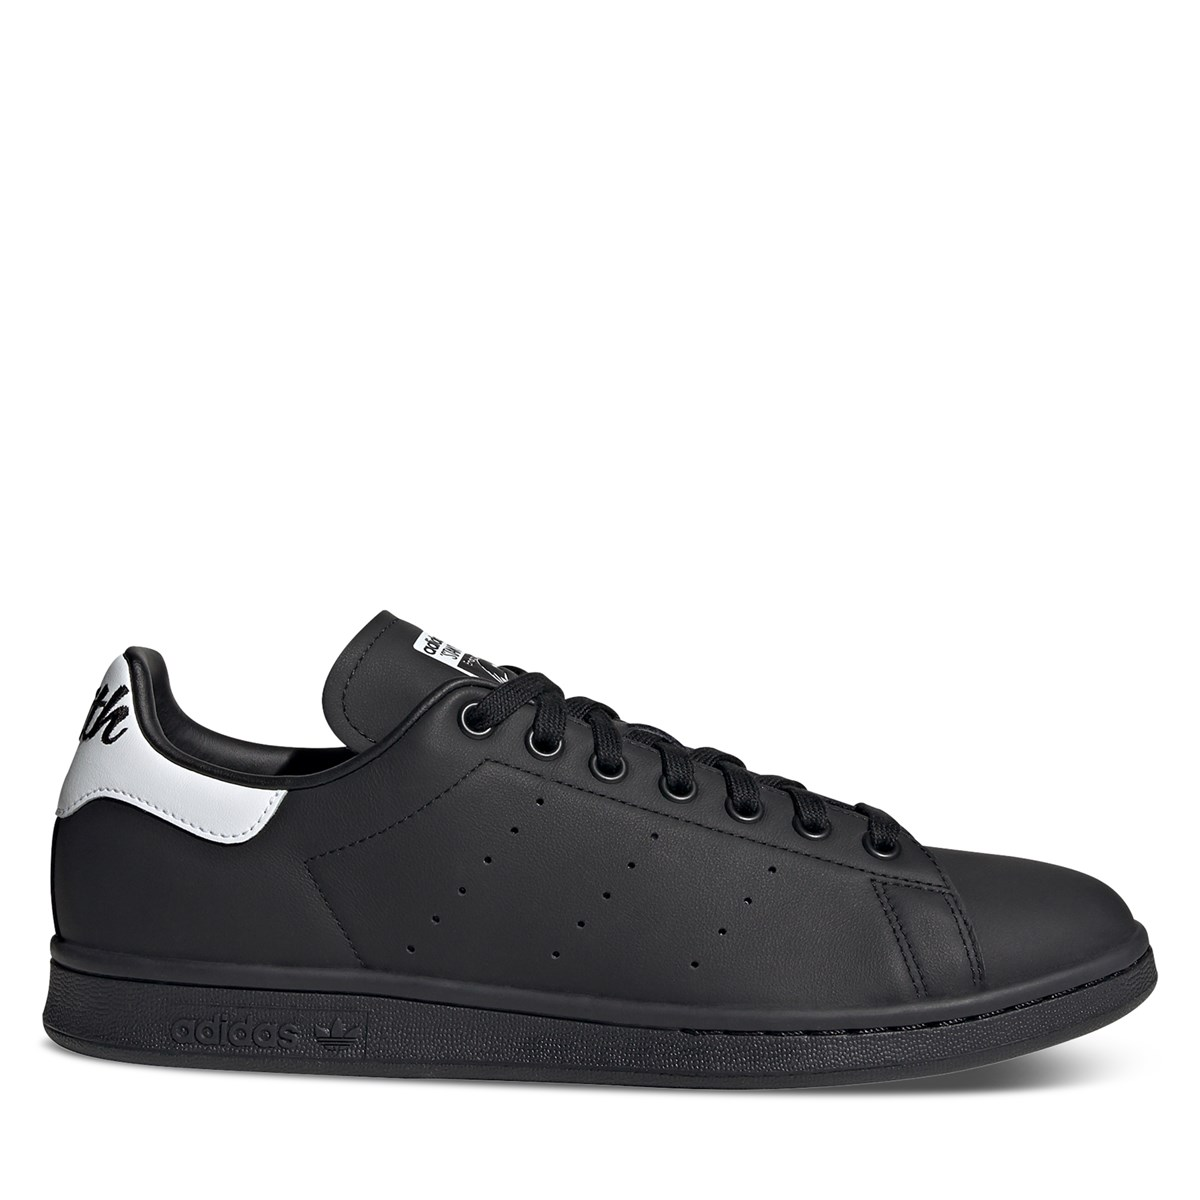 Men's Stan Smith Sneakers in Black